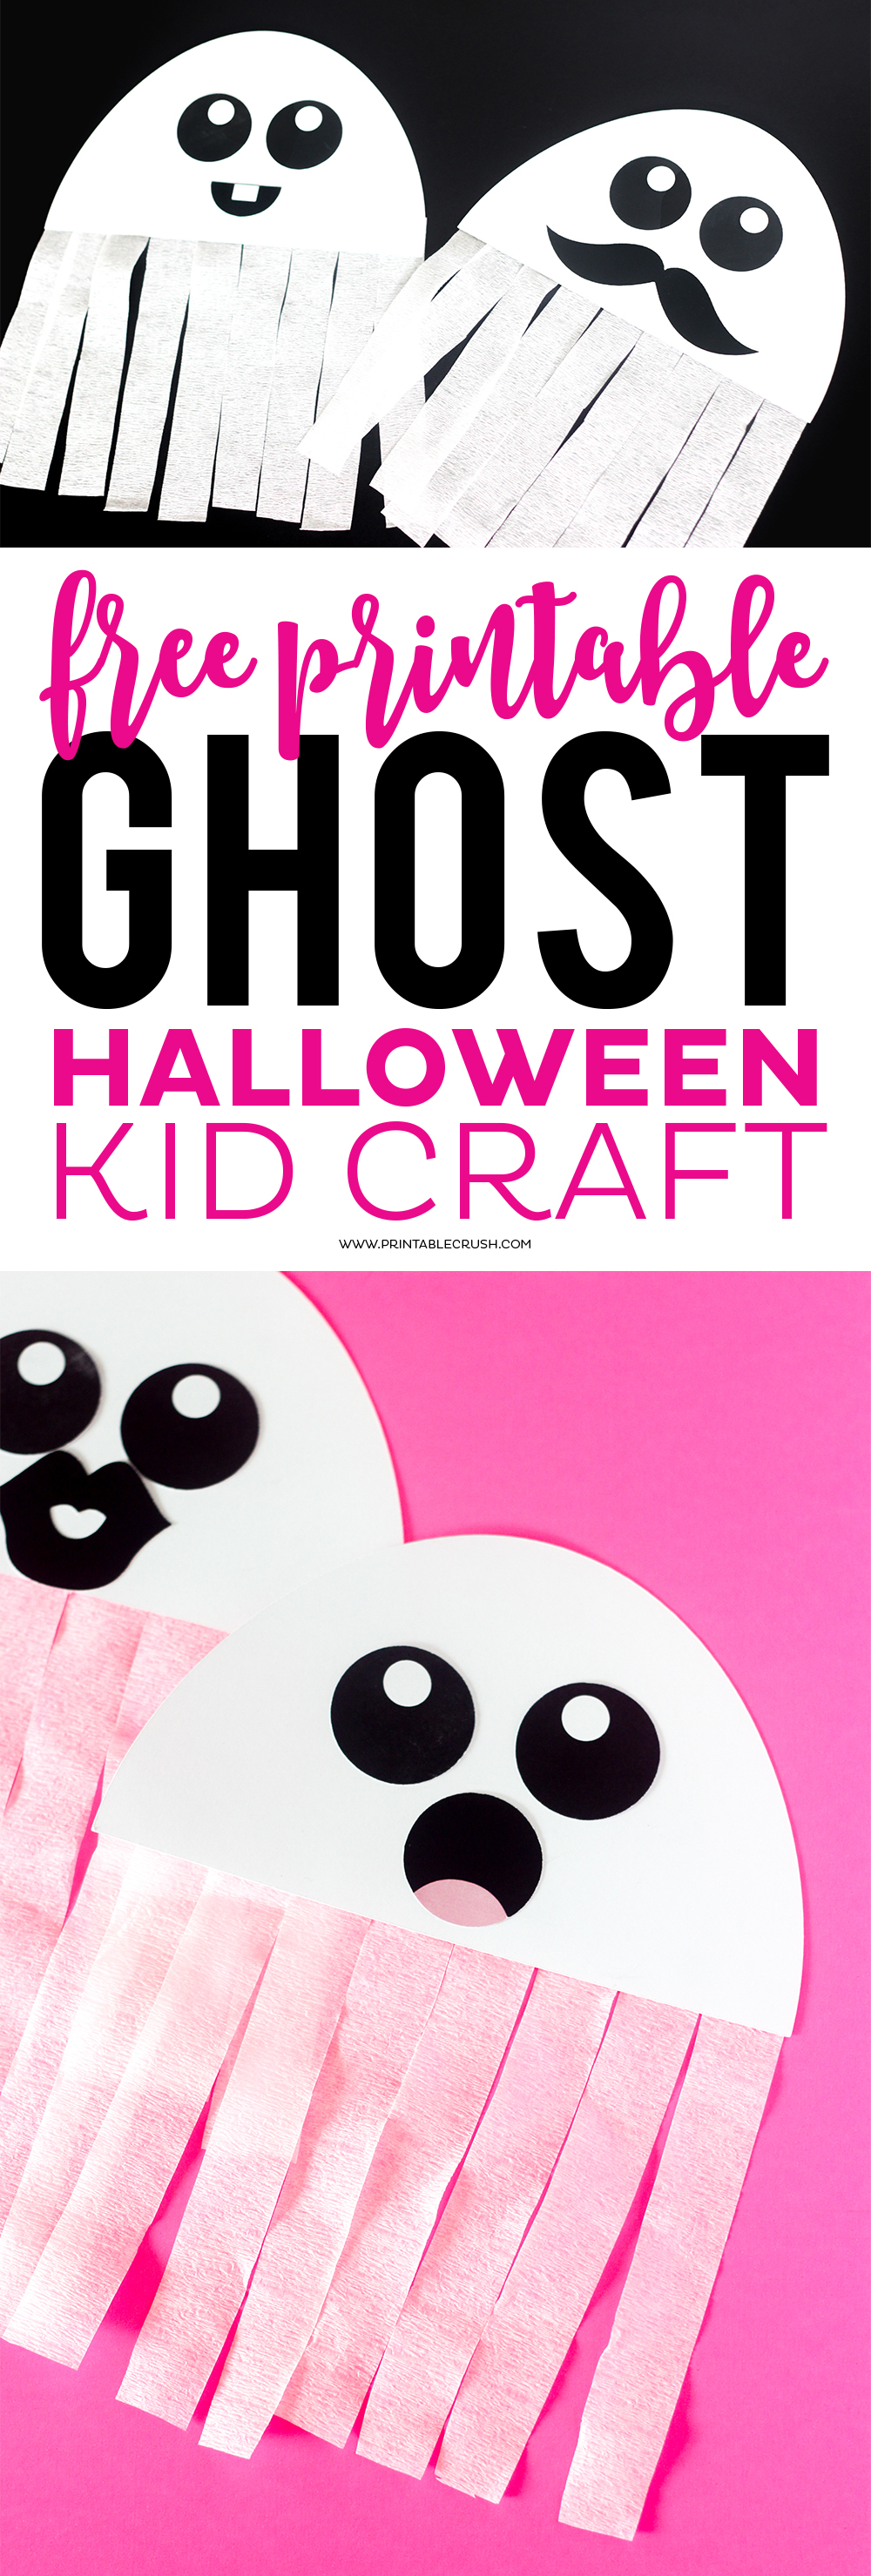 This FREE Printable Ghost Halloween Craft would be a great activity for your Halloween Party! Kids love creating their own ghosts!